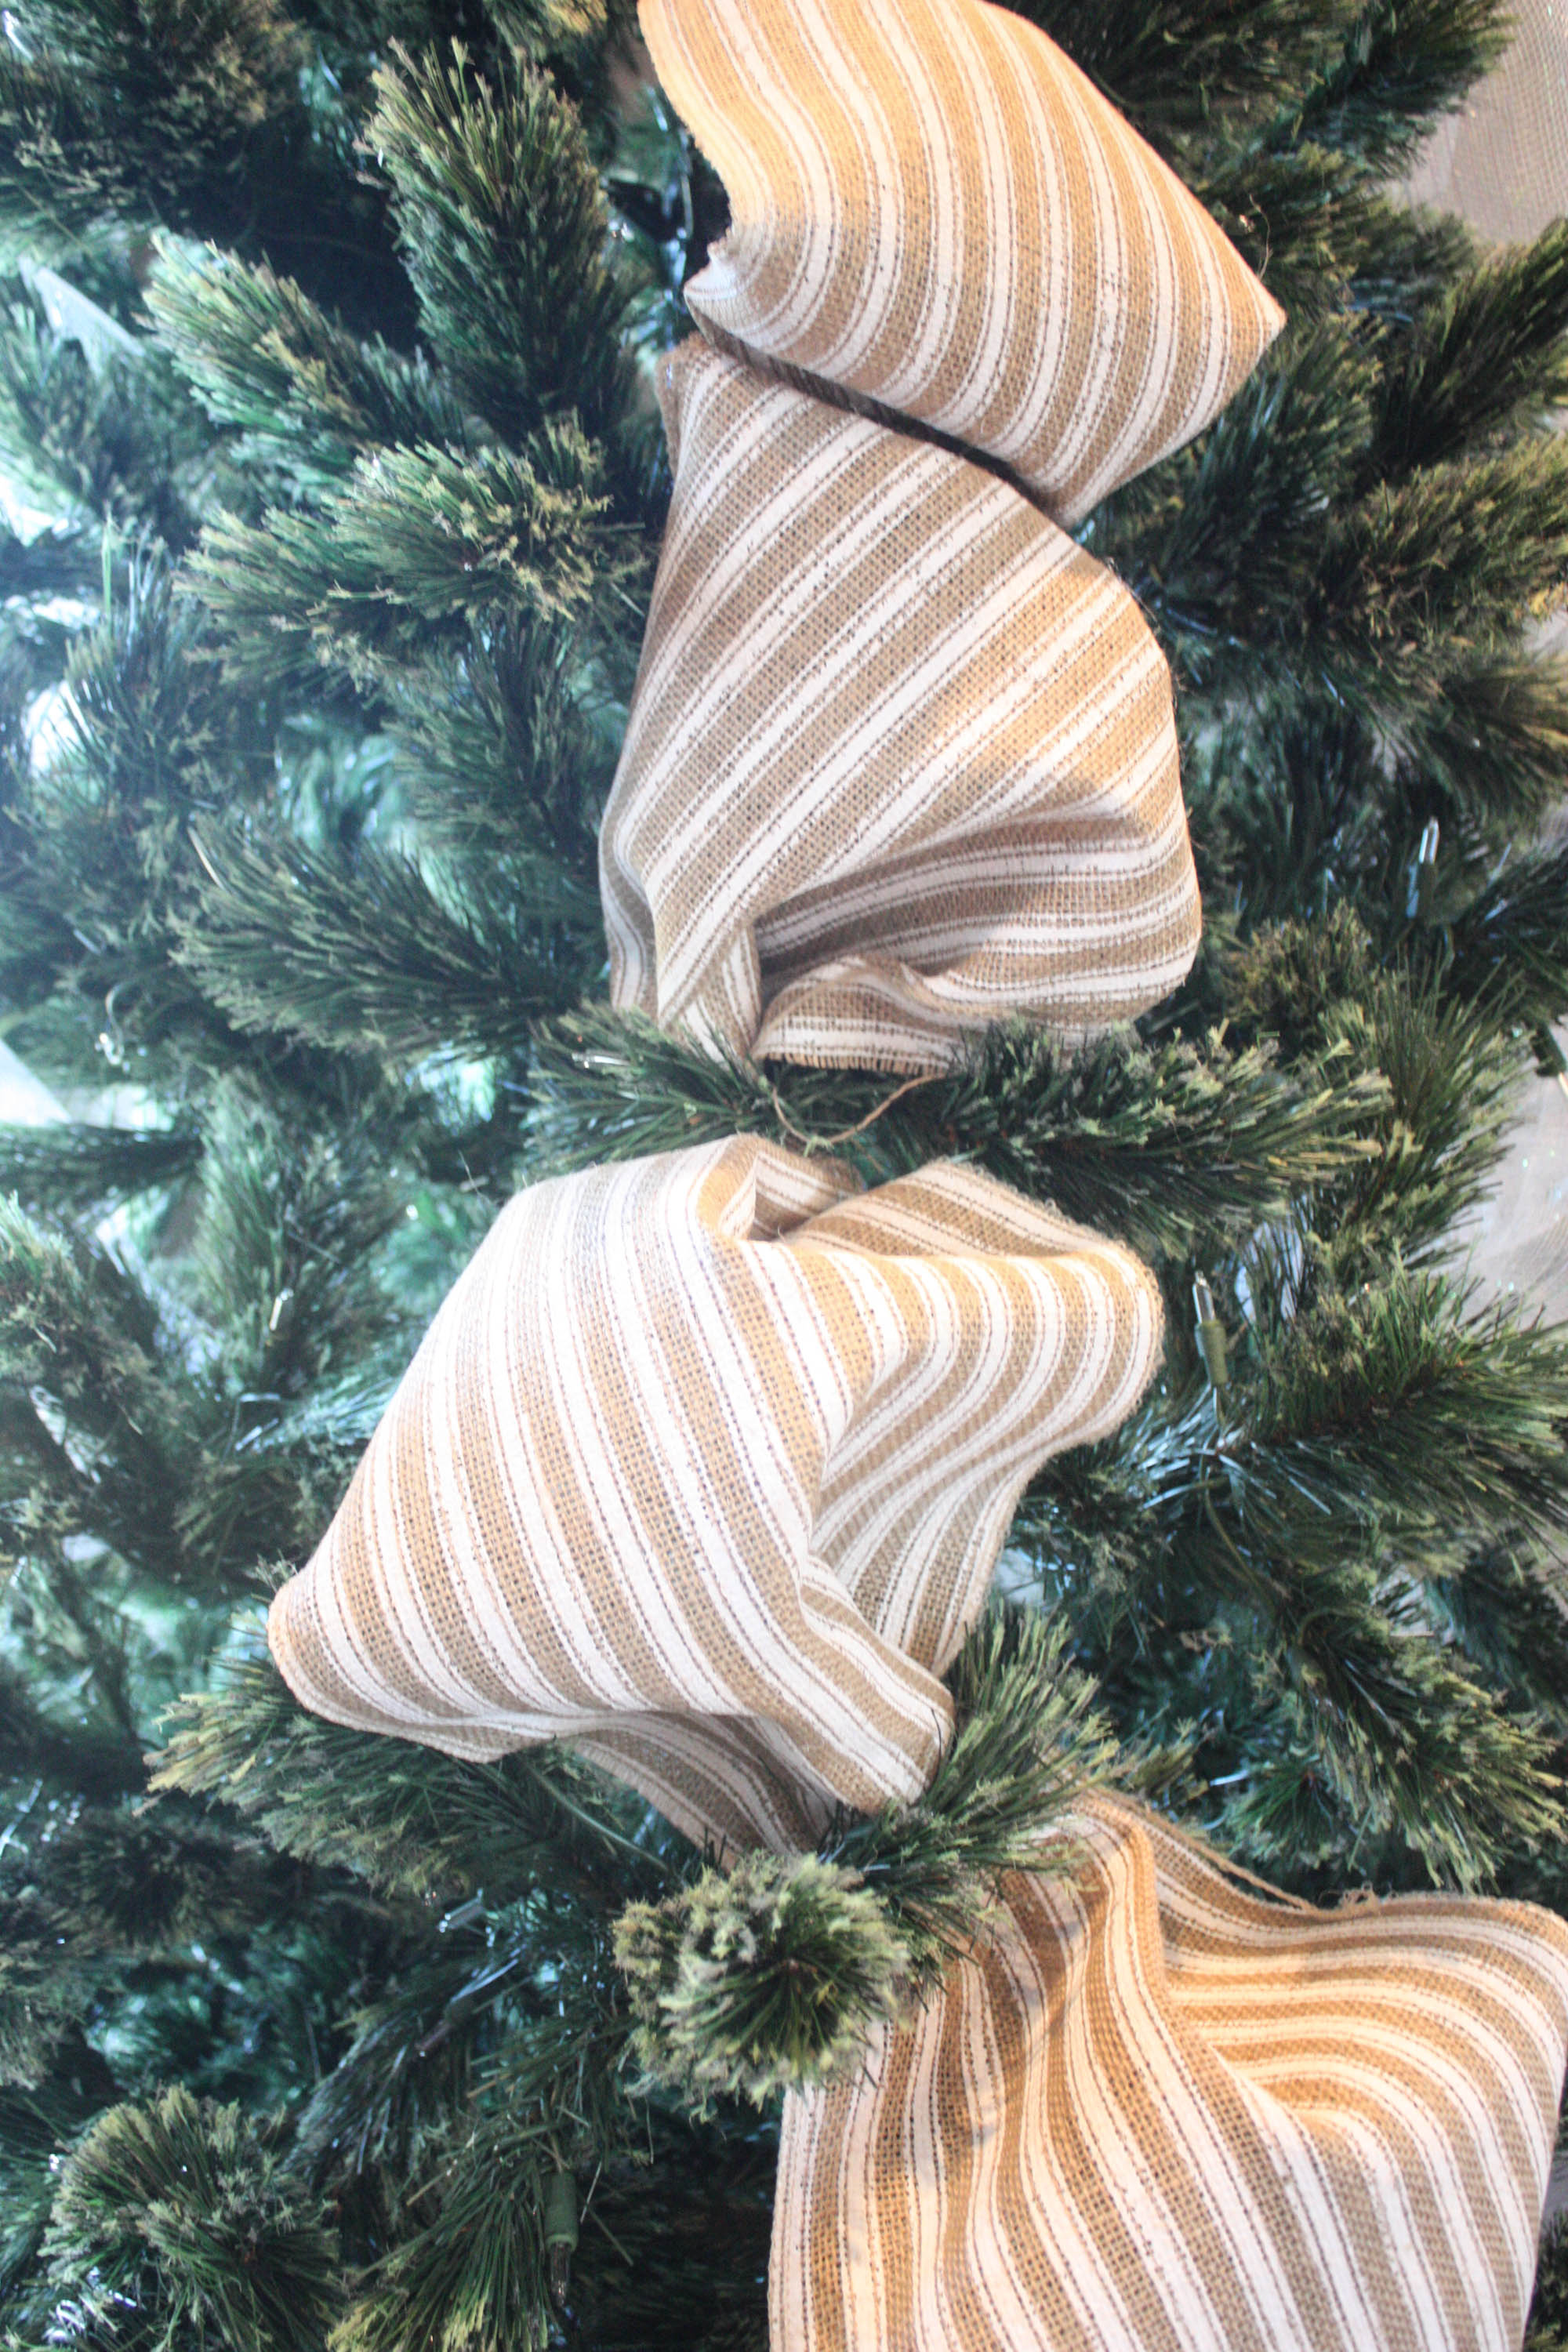 How To Put Ribbon On Christmas Tree.How To Put Ribbon On A Christmas Tree Re Fabbed